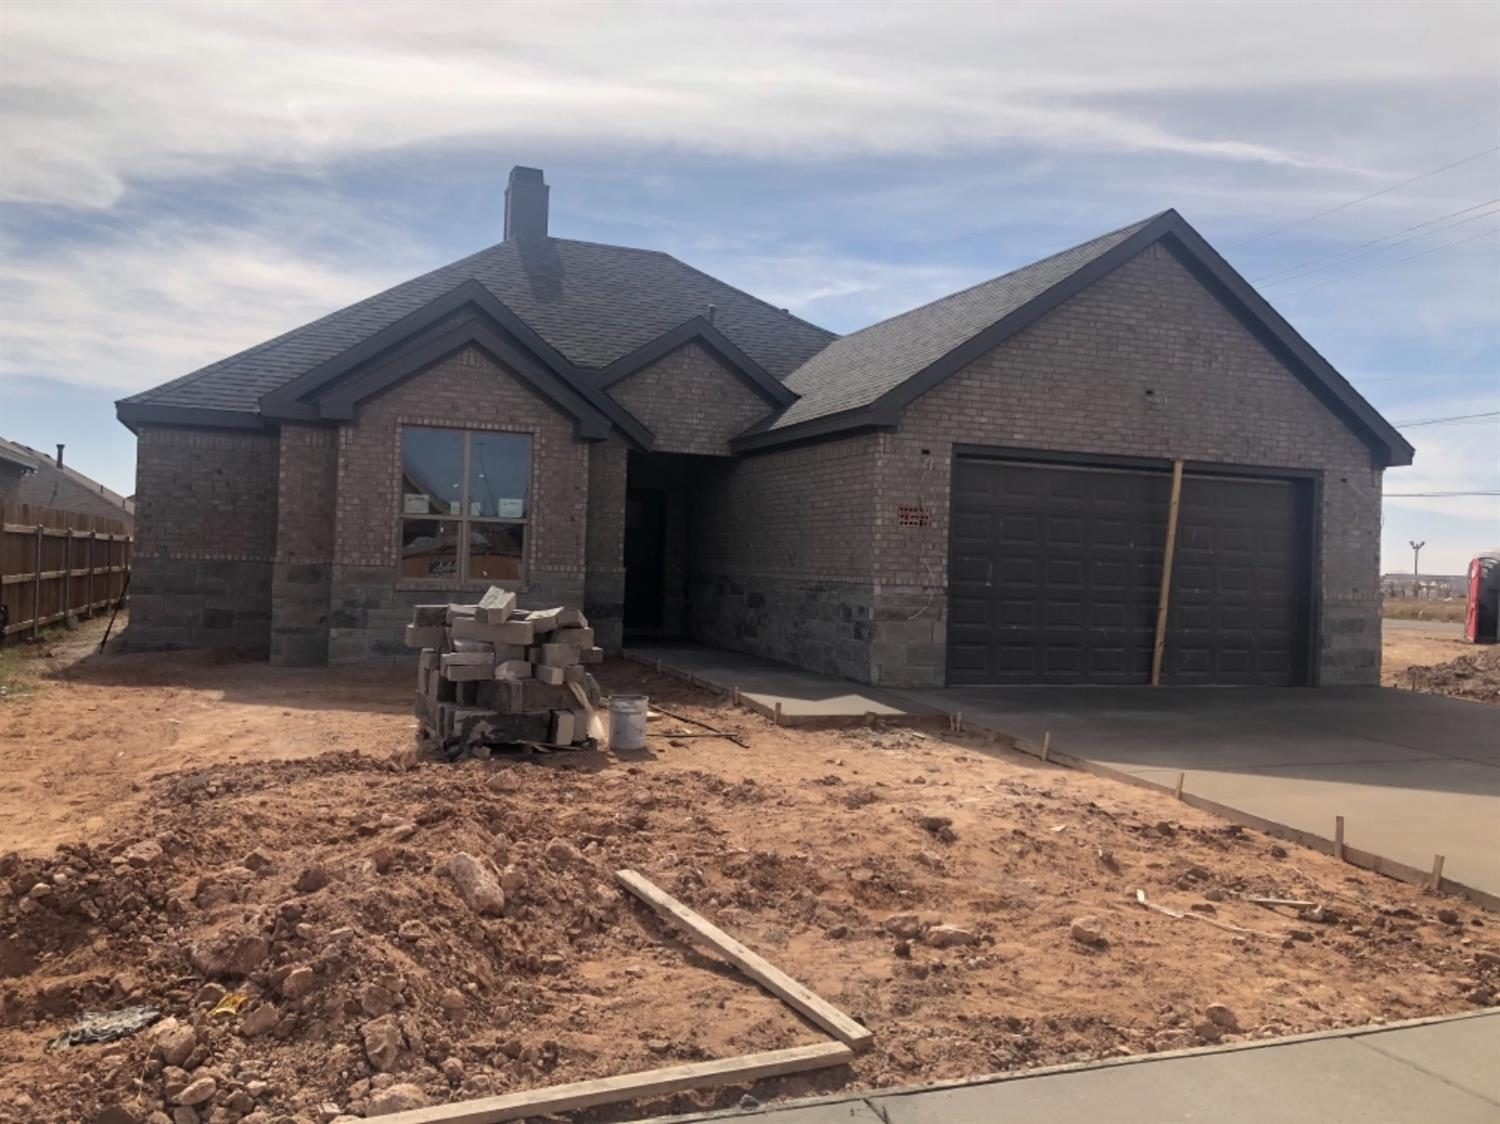 New Construction in Cambridge Way. Completion date 12/20. 3/2/2 with open concept, granite, stainless steel appliances, window blinds throughout, 50 gallon HWH. Buyer chooses gas or electric range.